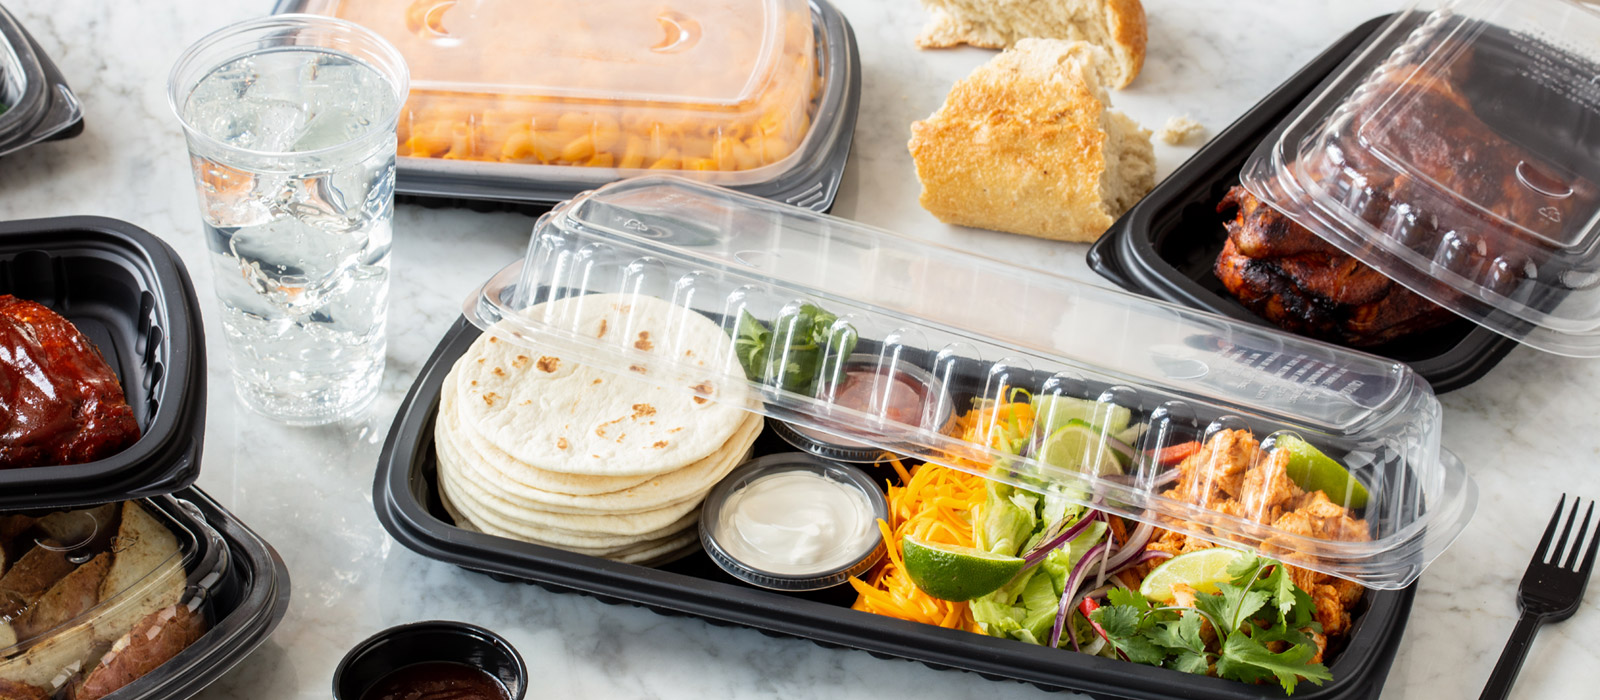 NEWSPRING POLYPROPYLENE CONTAINERS